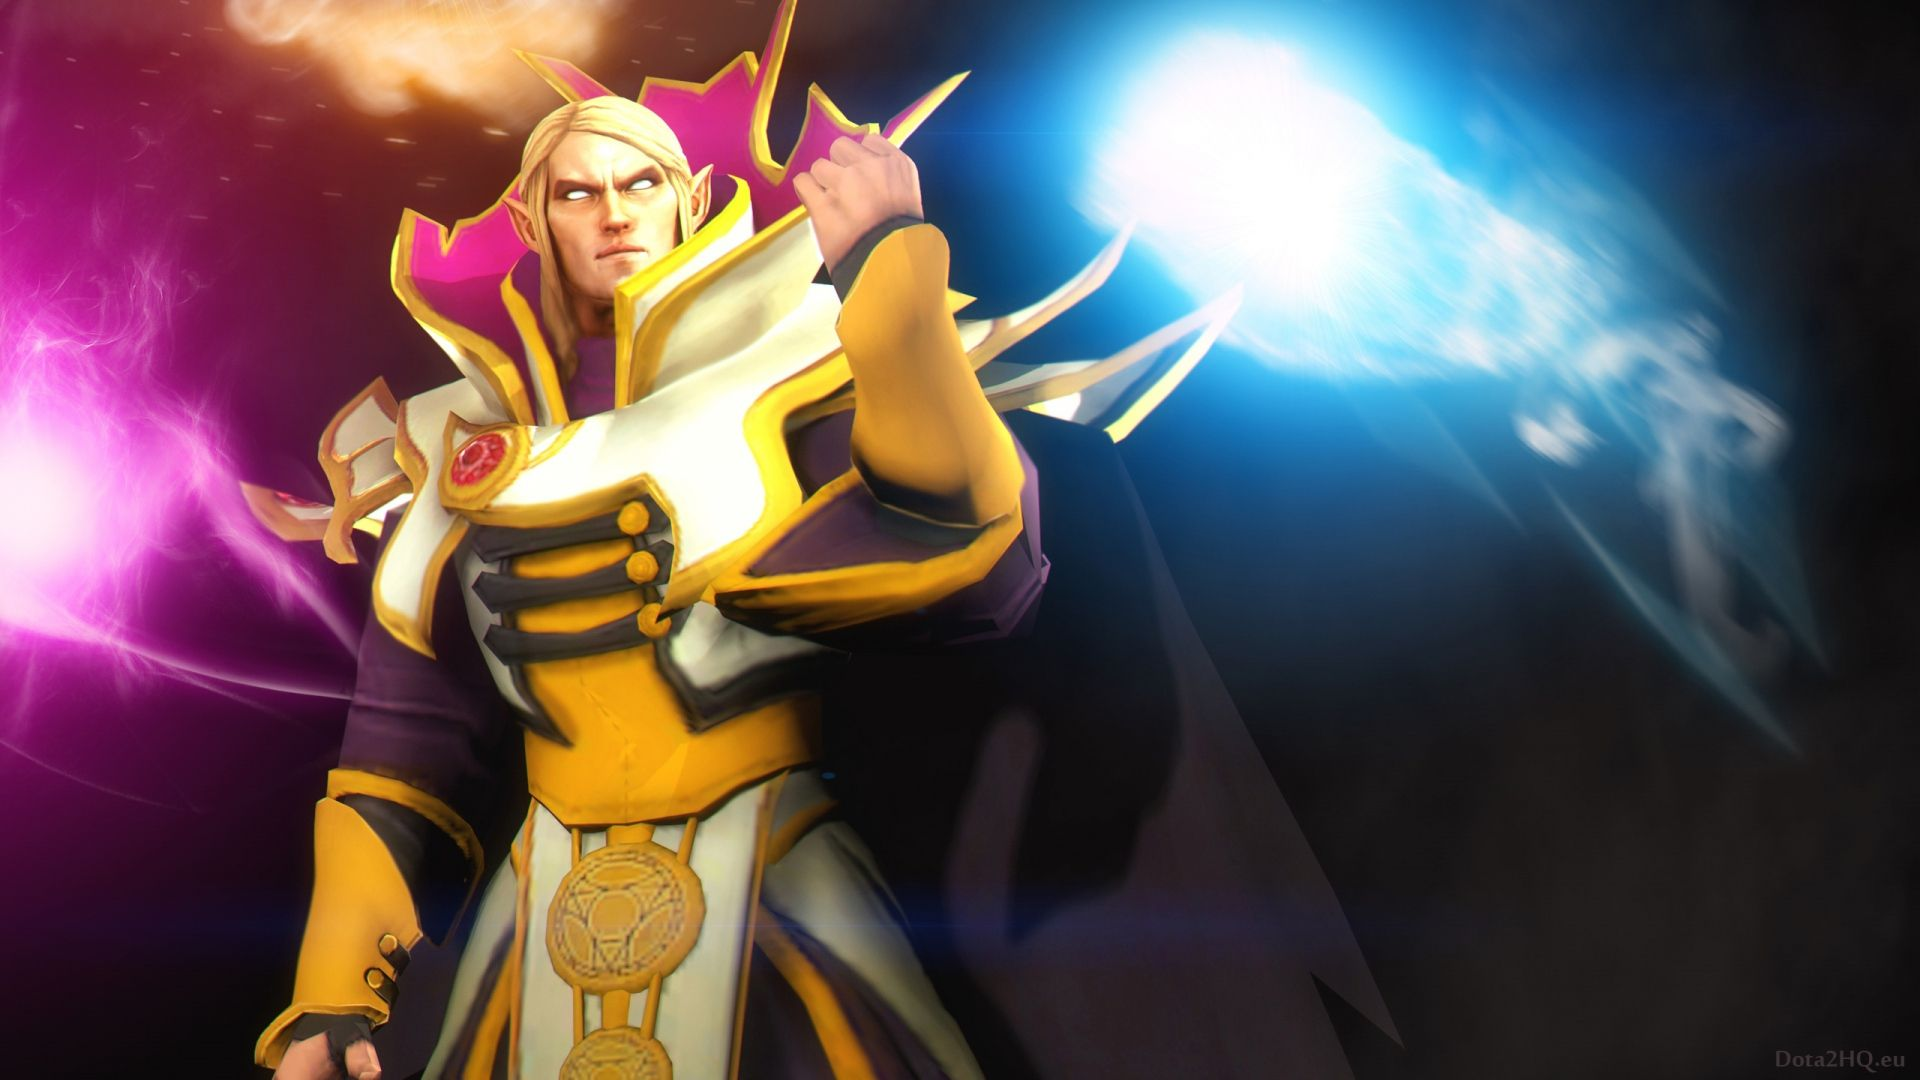 Stylish Invoker Dota 2 Art 78 HD Anime Wallpaper Kuff Games